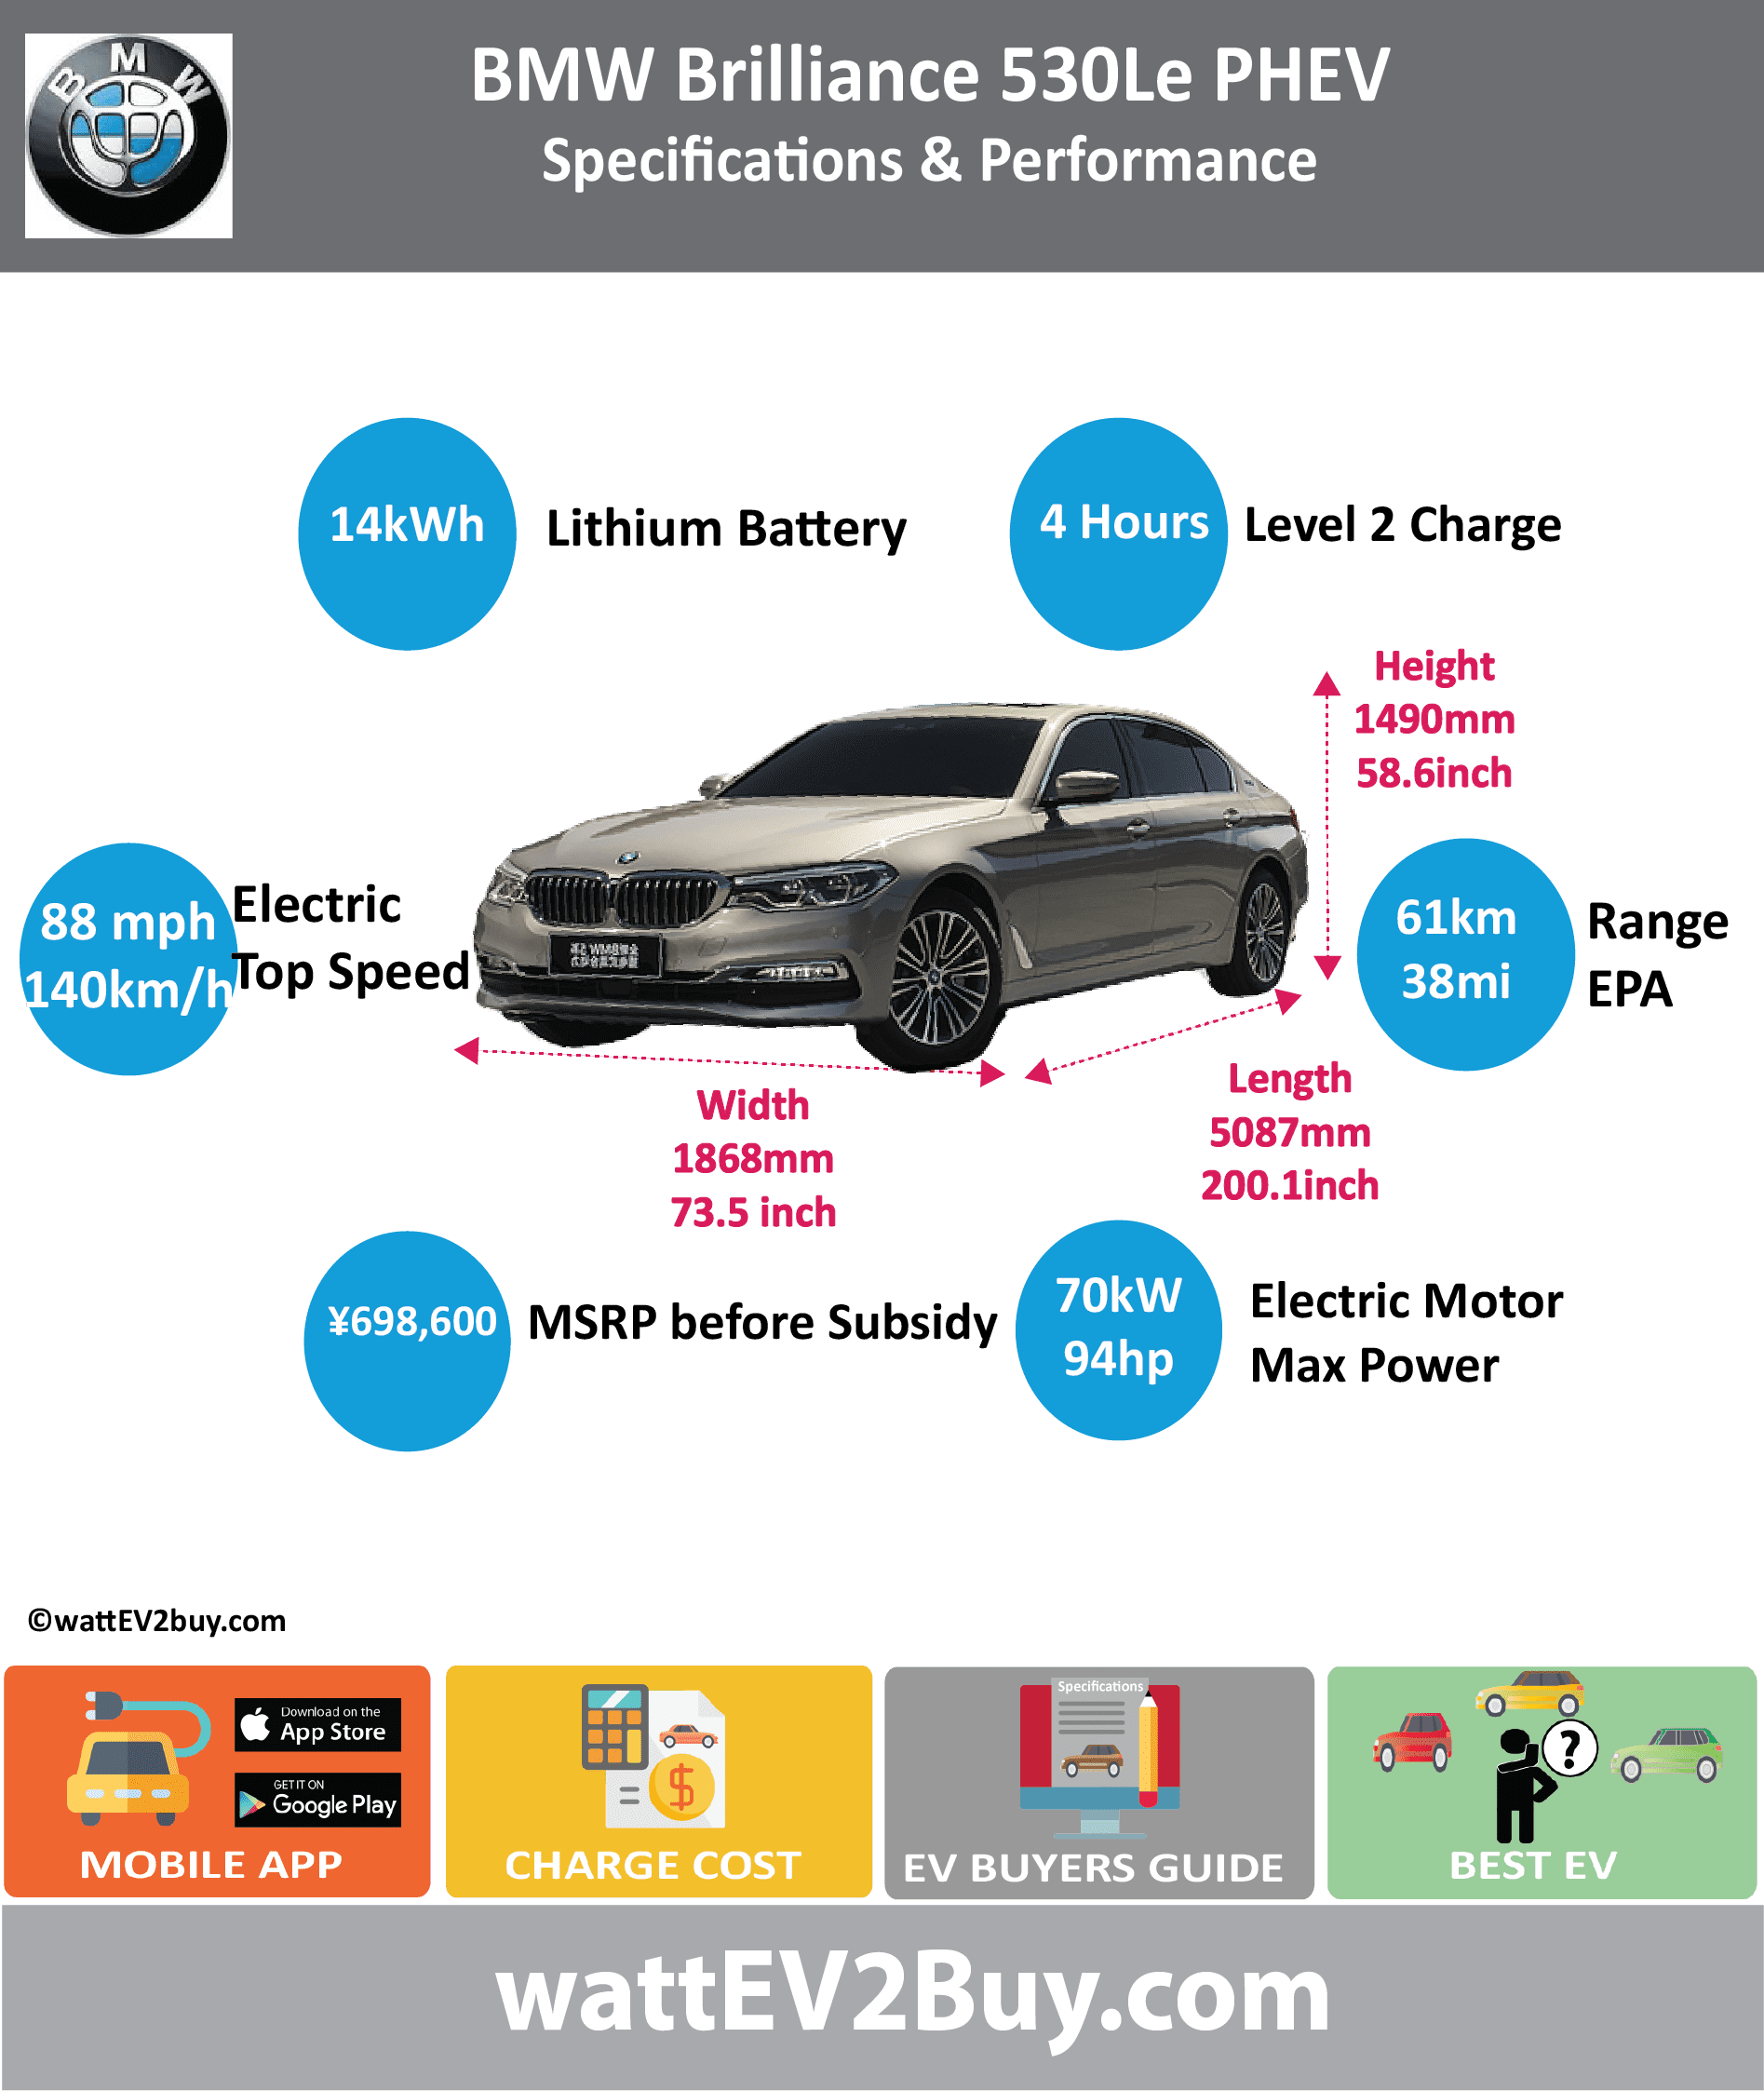 Bmw Brilliance 530le Phev Electric Vehicle Only Available In China